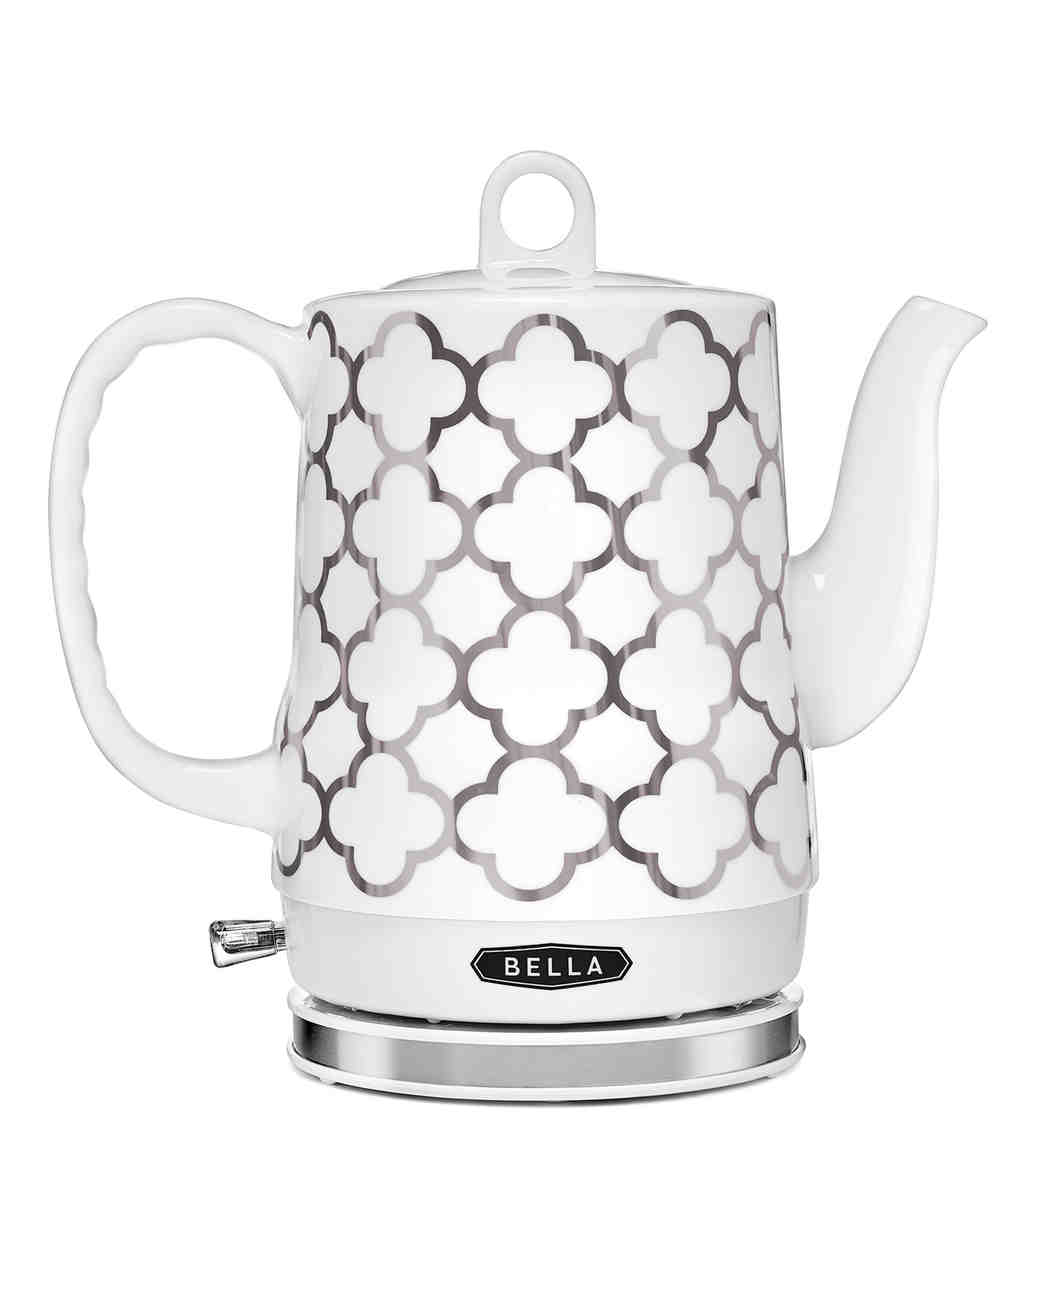 bella ceramic kettle